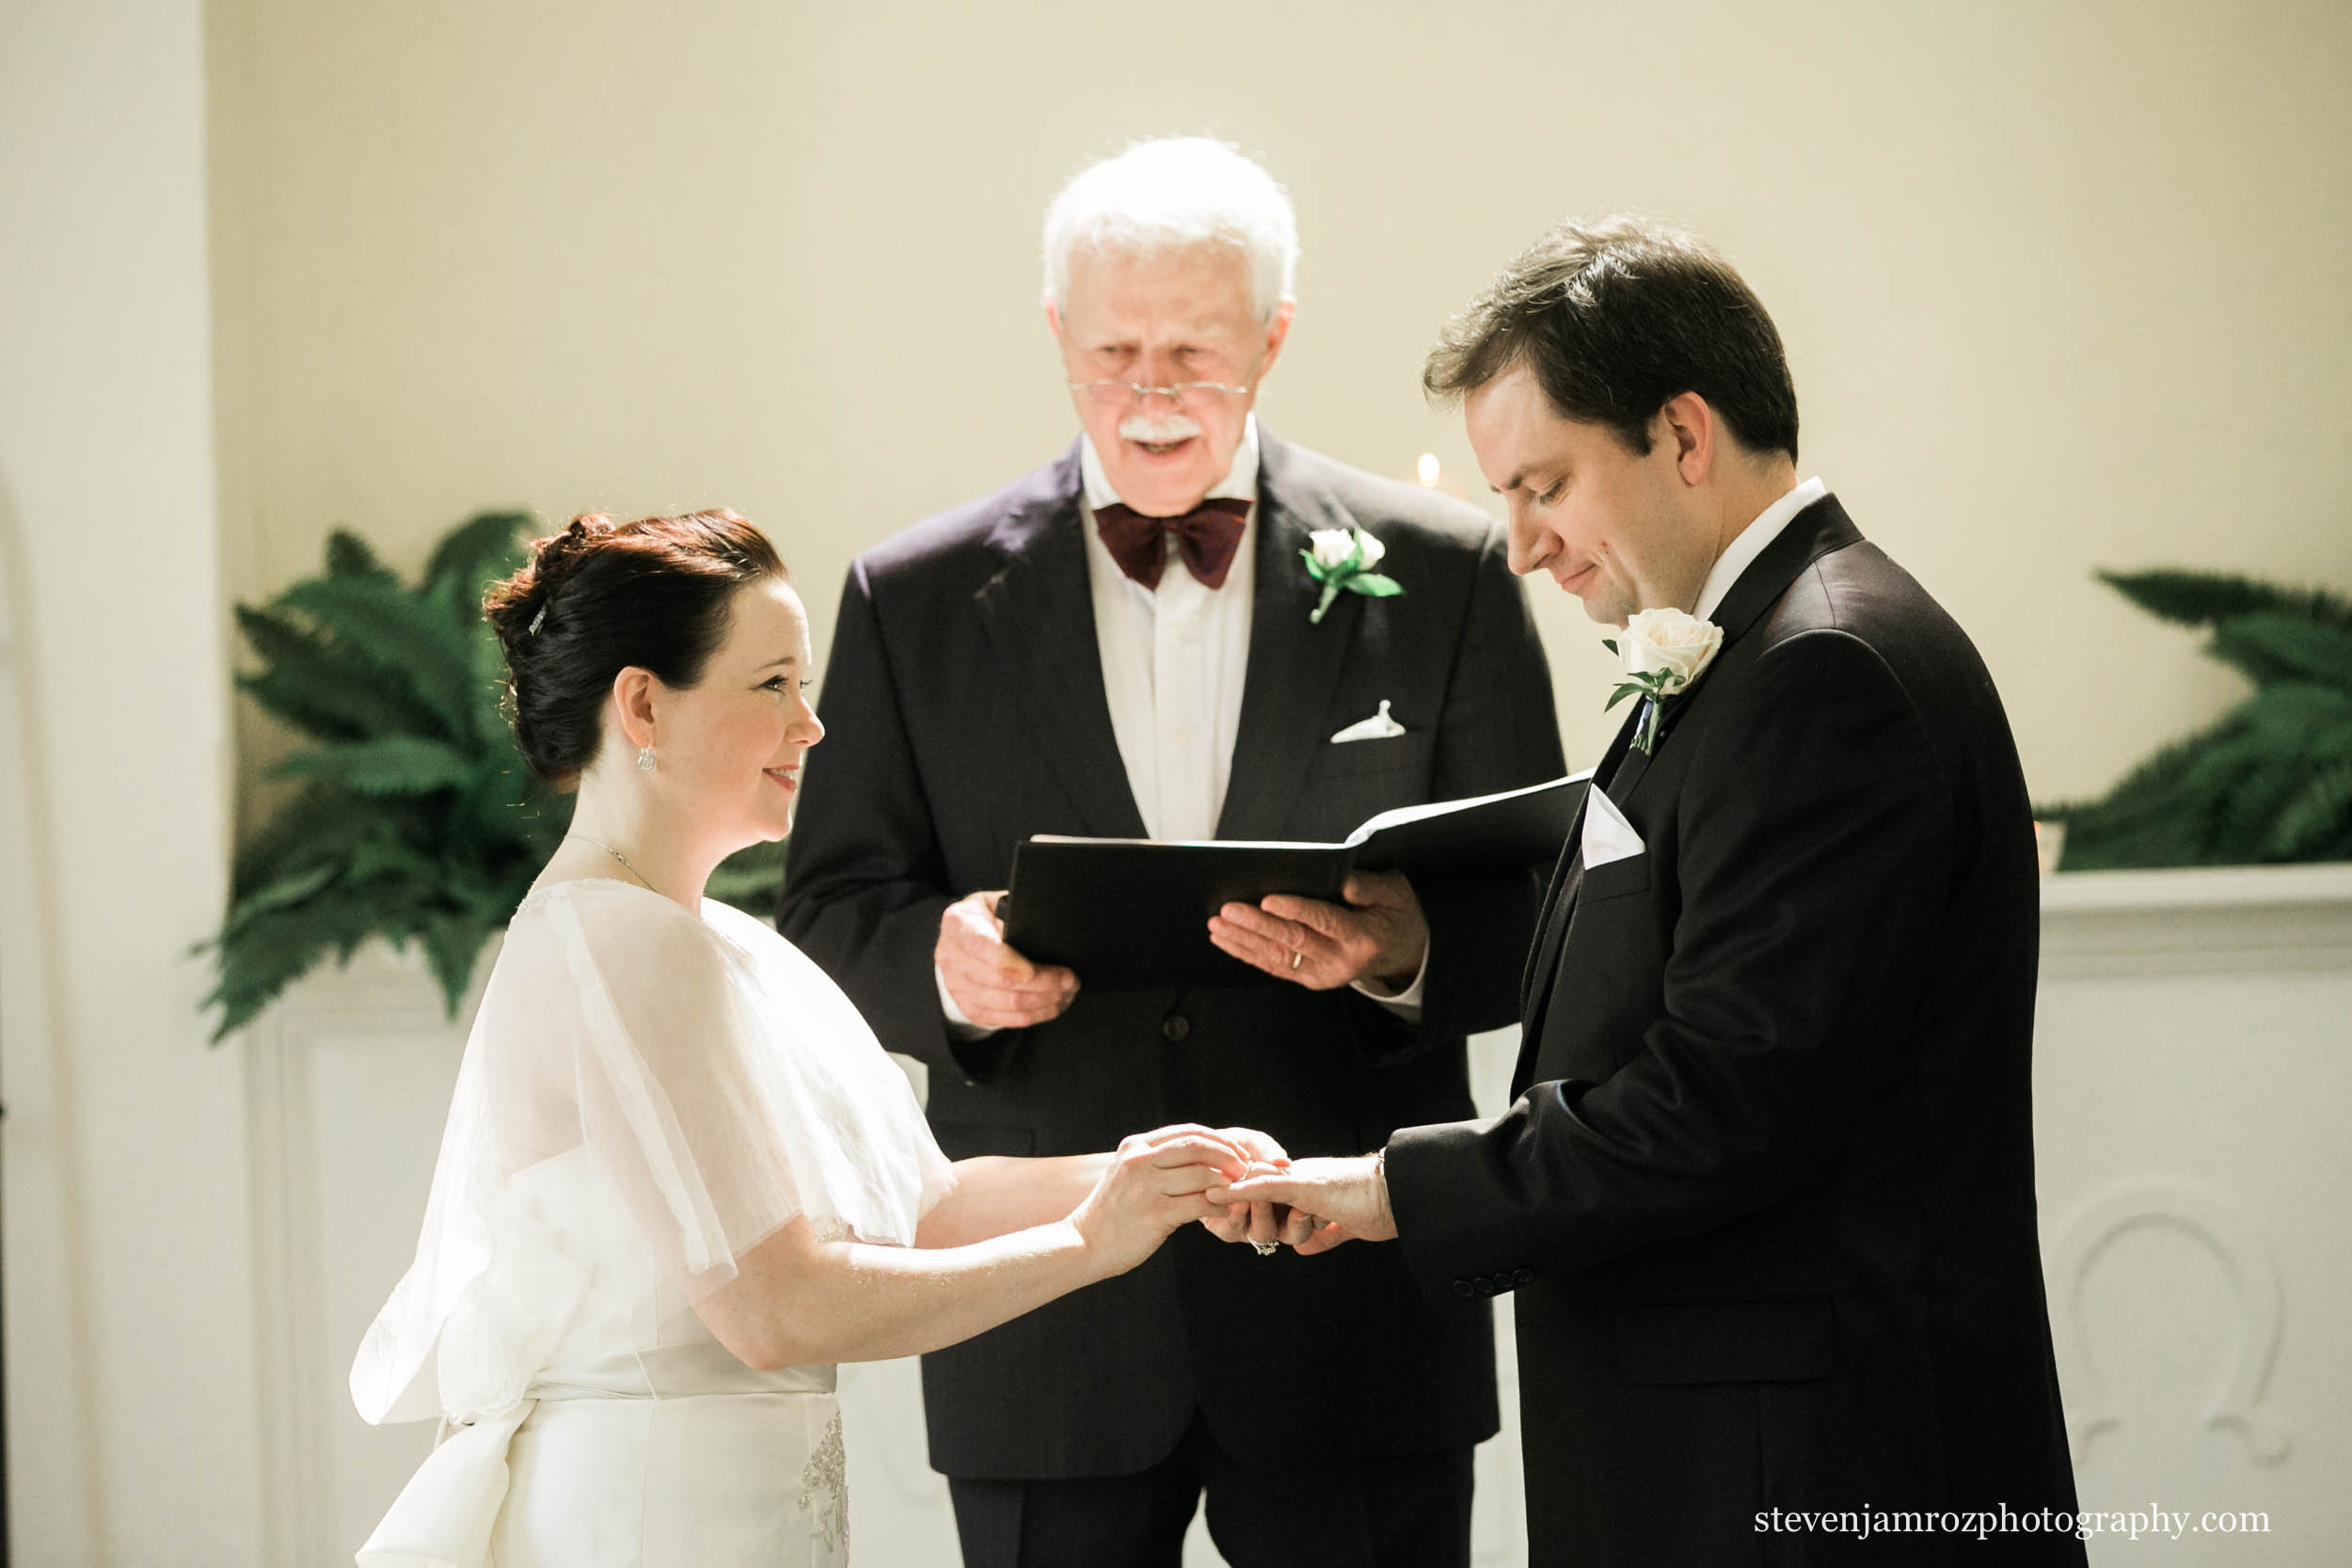 ceremony-church-wake-forest-steven-jamroz-photography-0375.jpg